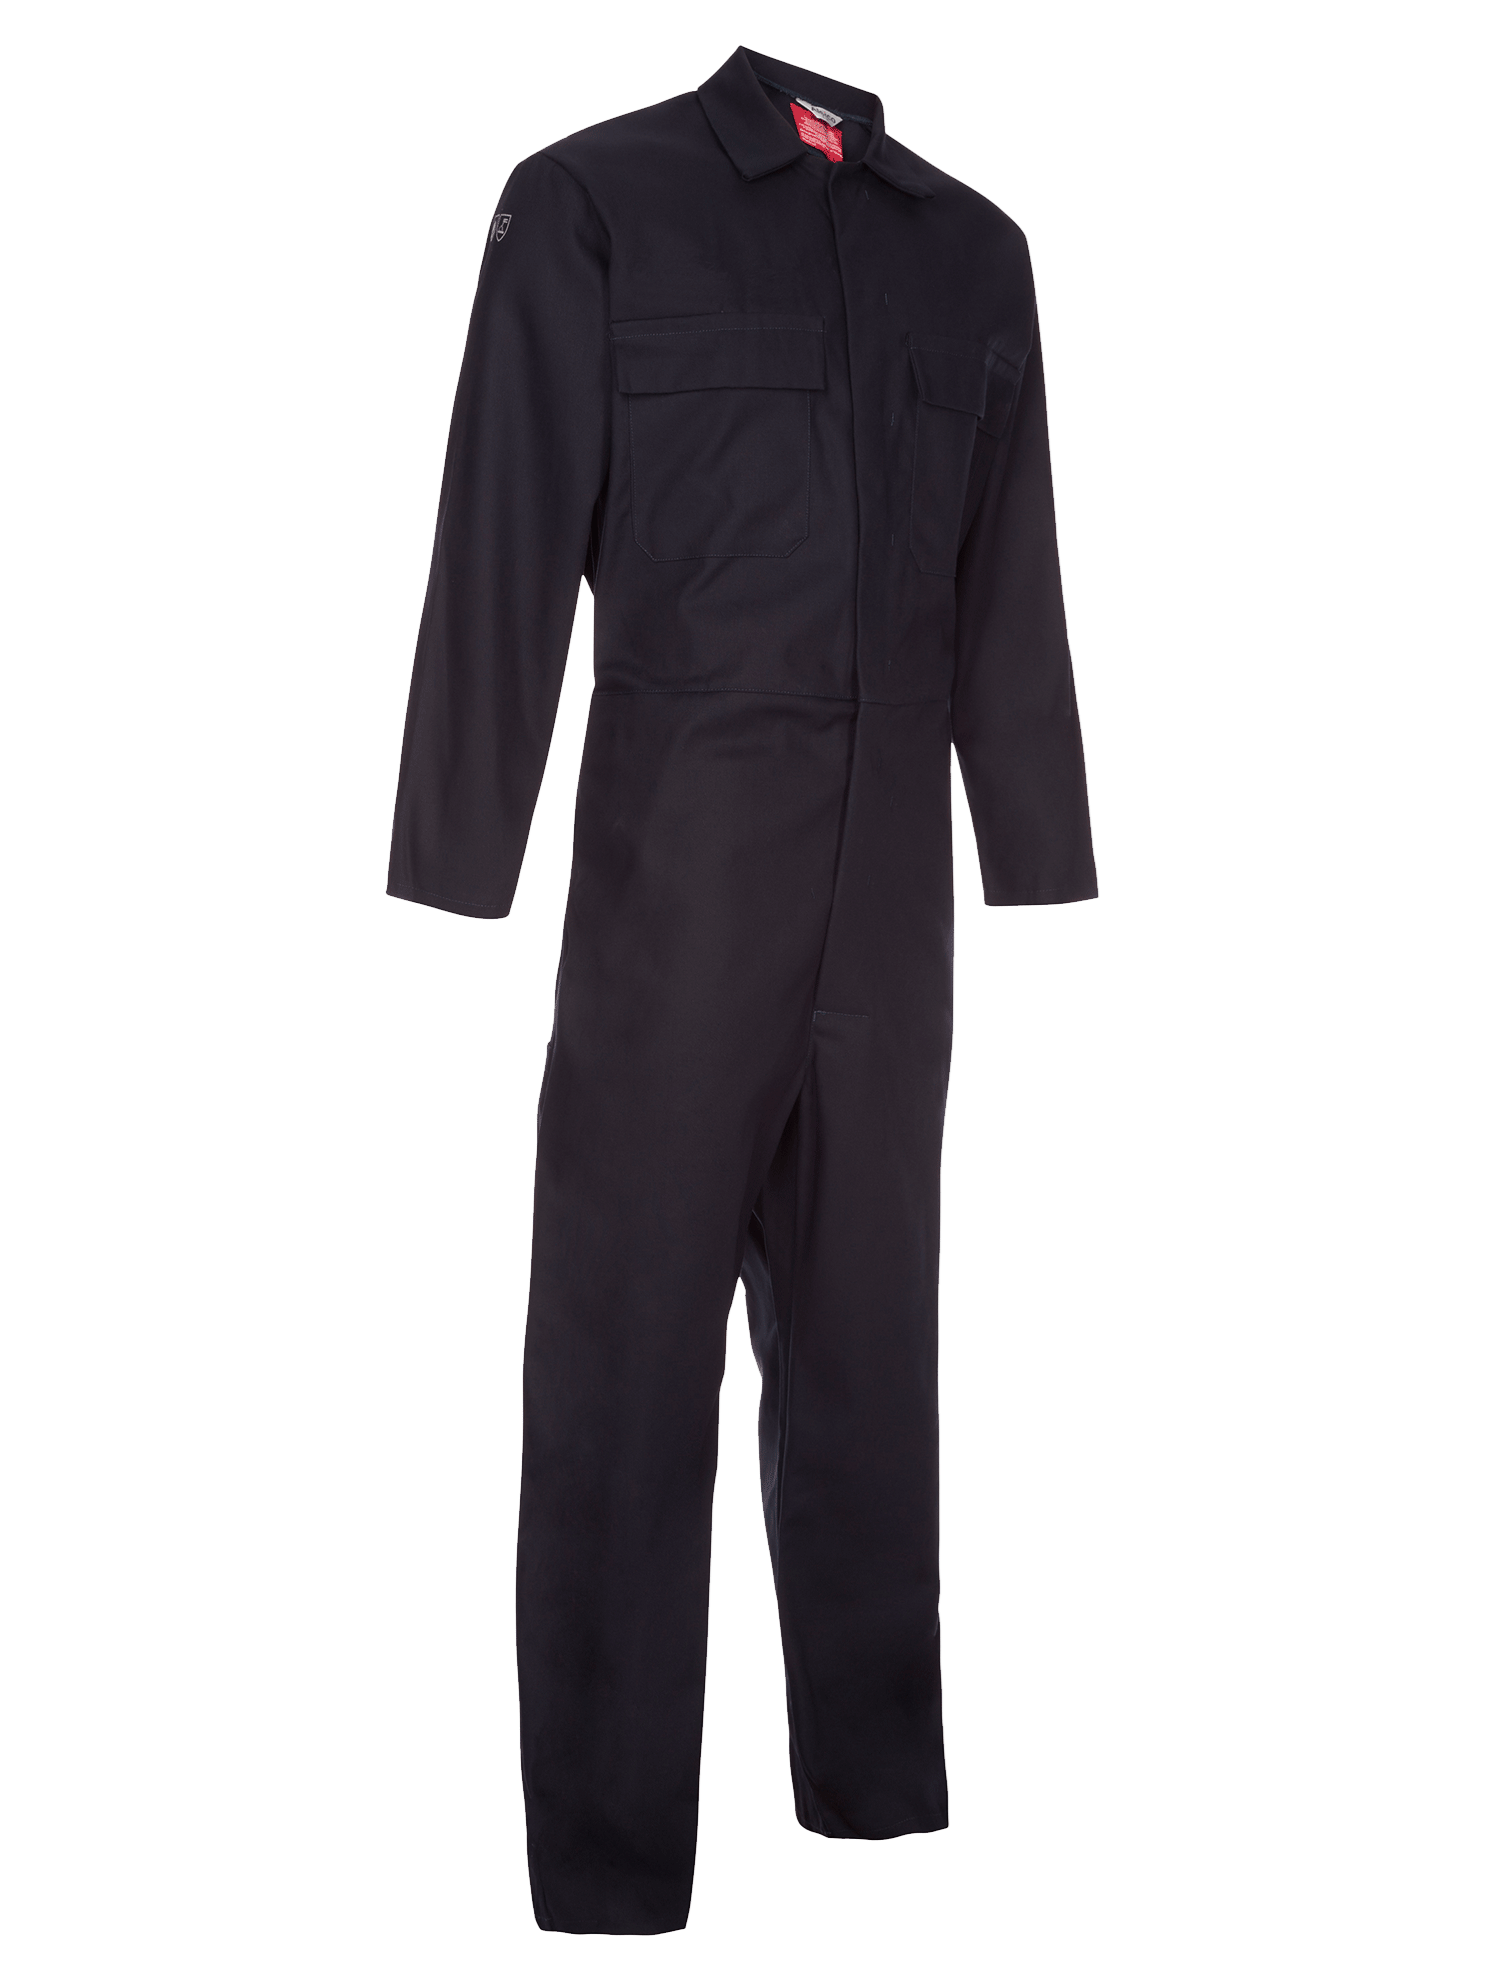 Picture of Coverall made with Zeus FR - Navy